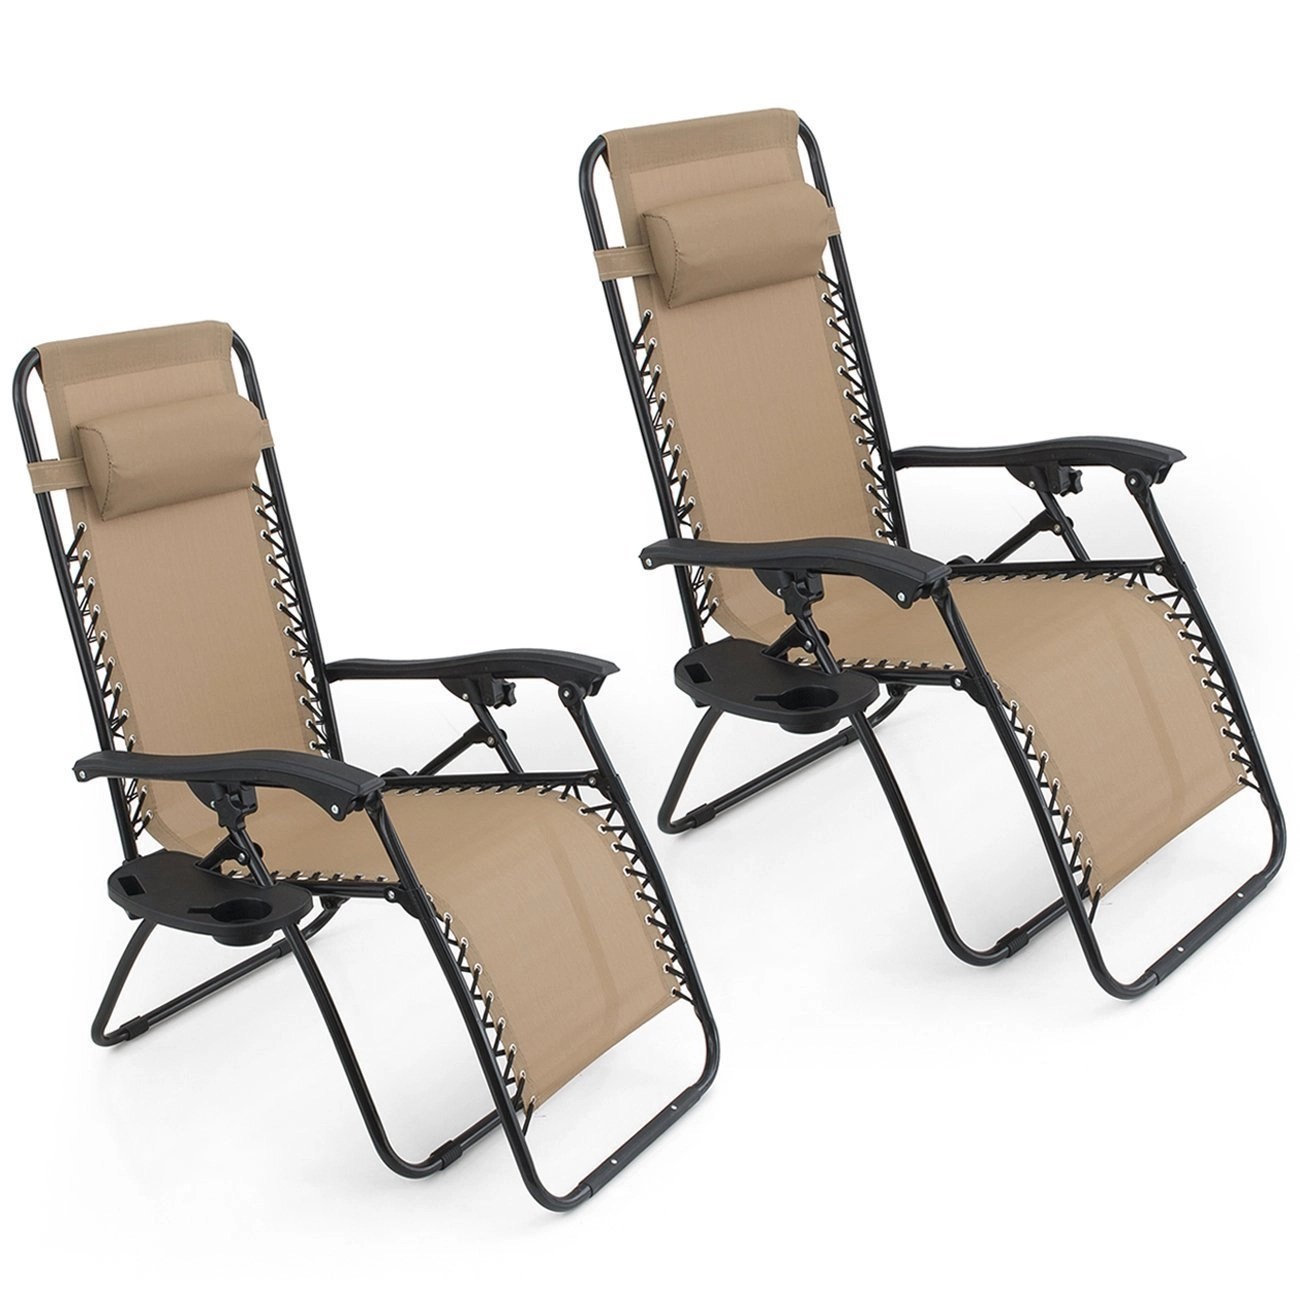 What Is A Zero Gravity Chair Arksen Zero Gravity Chair Pack Of 2 Review